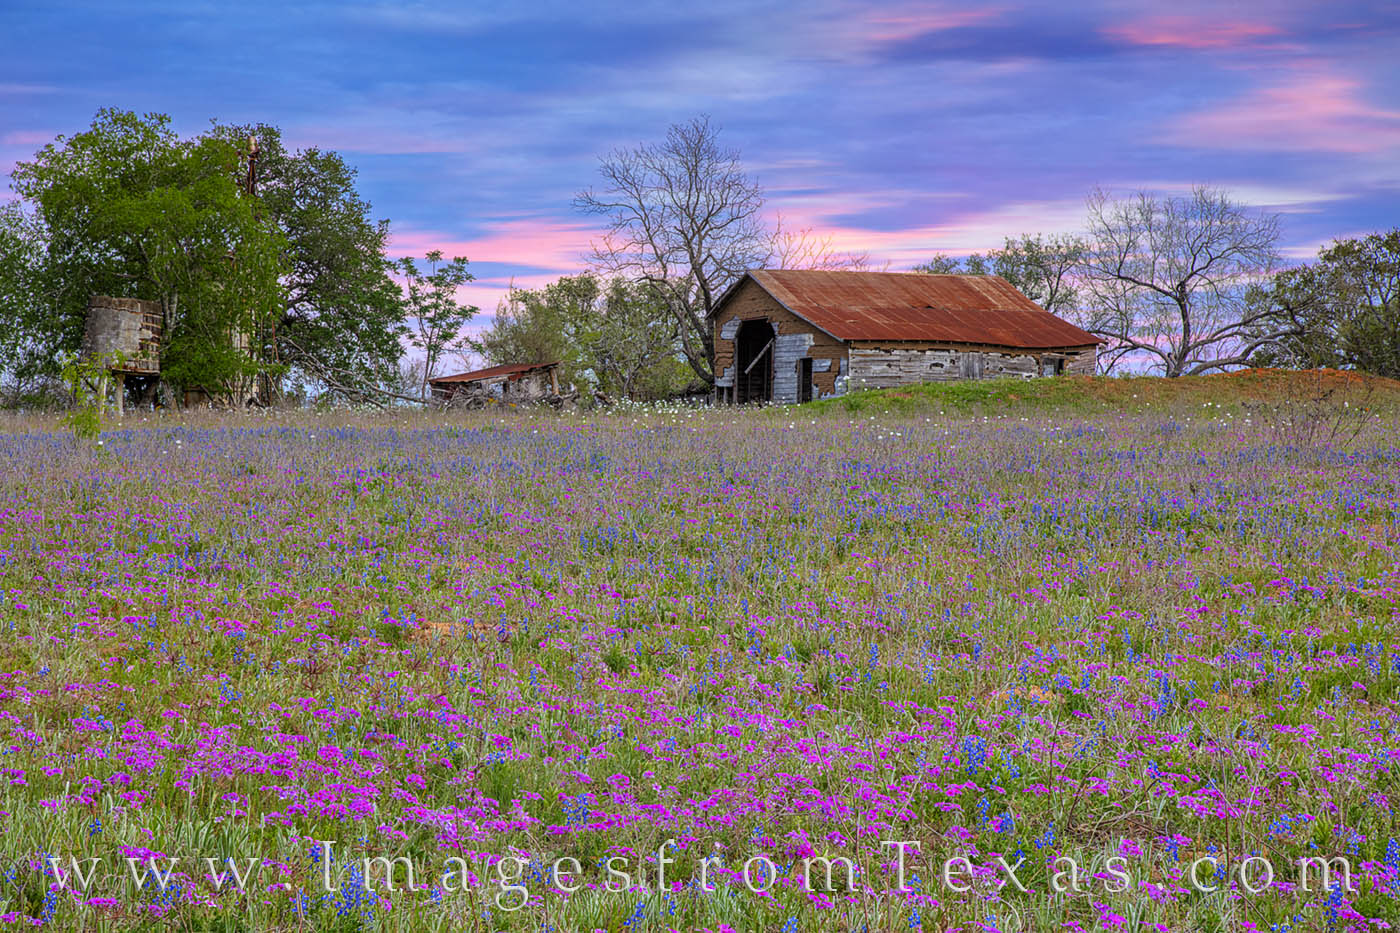 An old barn hangs on beneath the changing evening light of a late spring sunset. In the foreground, pink phlox blooms and a few...